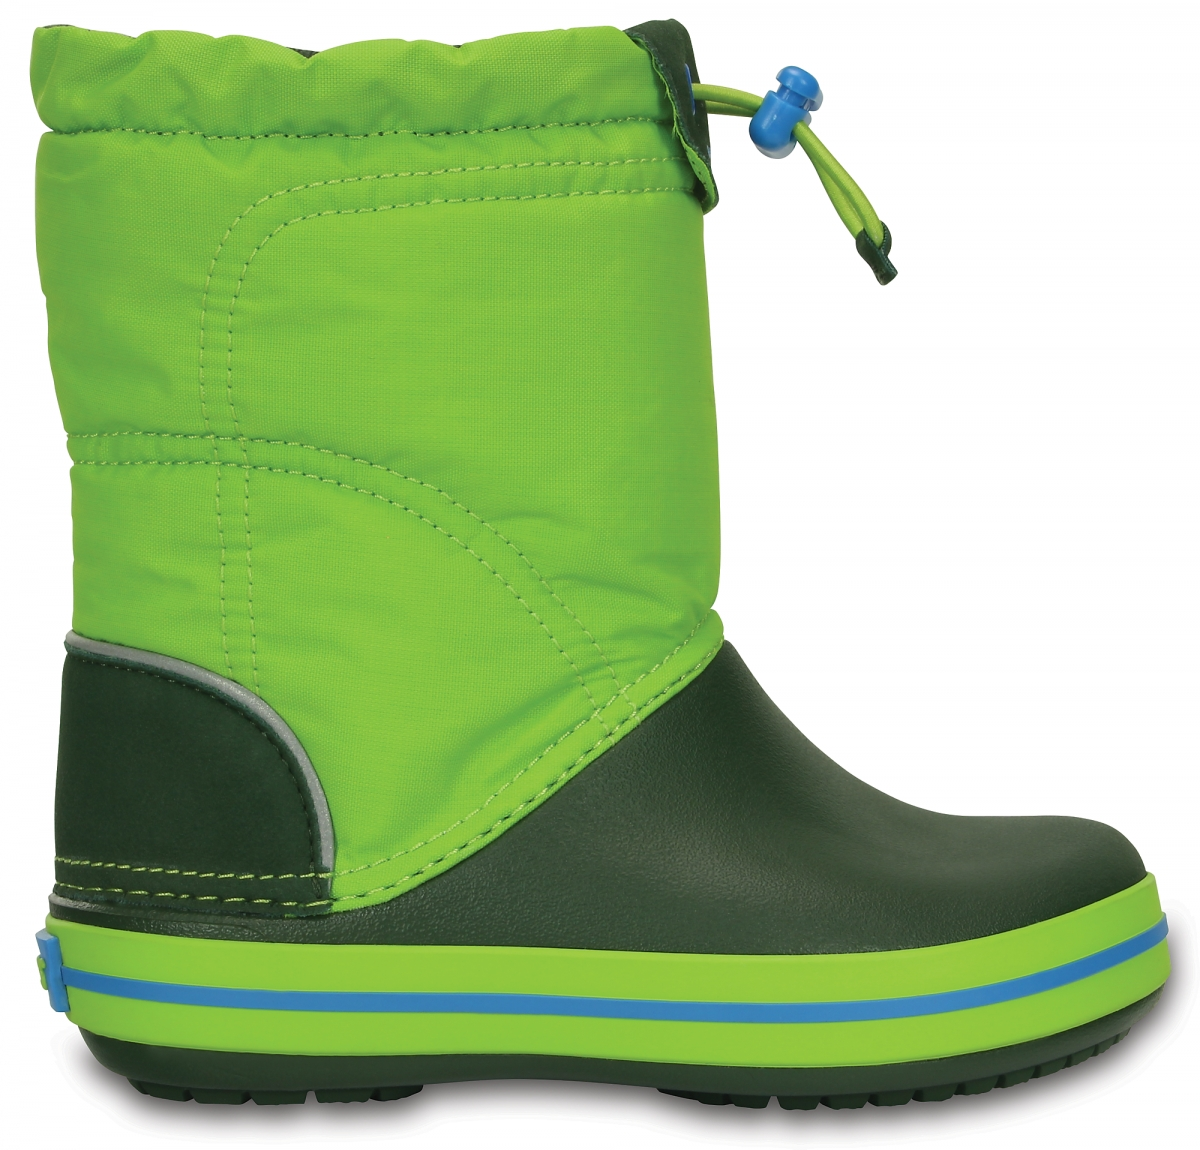 Crocs Crocband LodgePoint Boot Kids Lime/Forest Green, J3 (34-35)